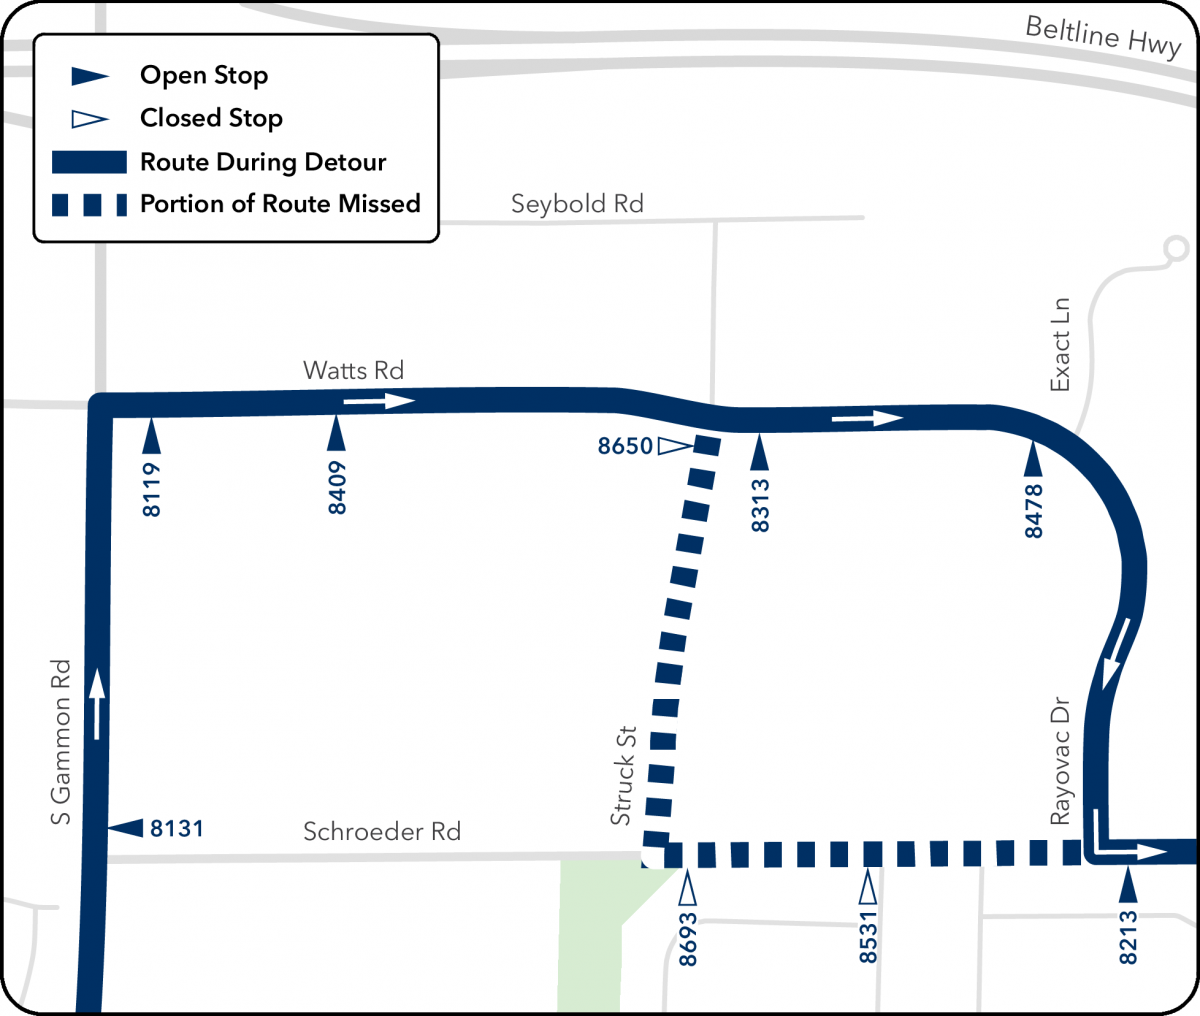 route 50 map from struck and schroeder